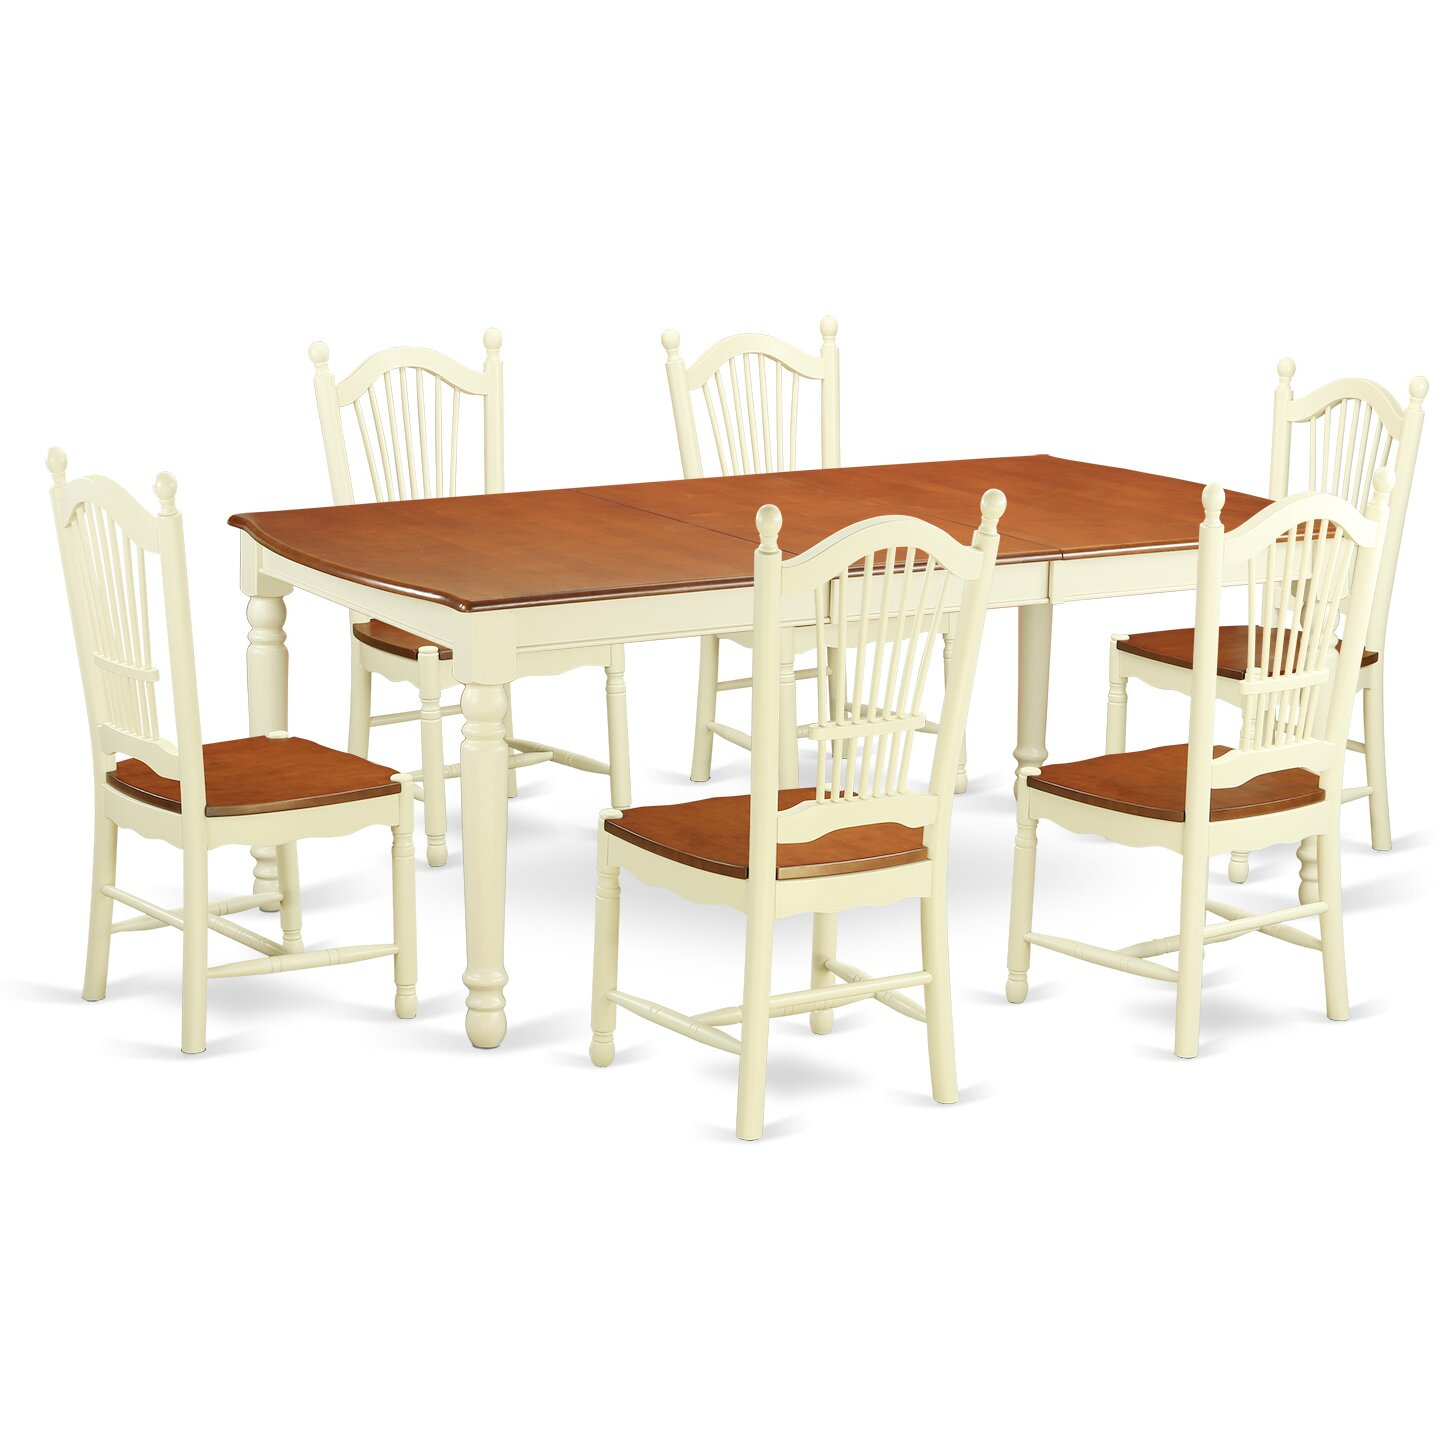 East west dover 7 piece dining set reviews wayfair for Dinette furniture